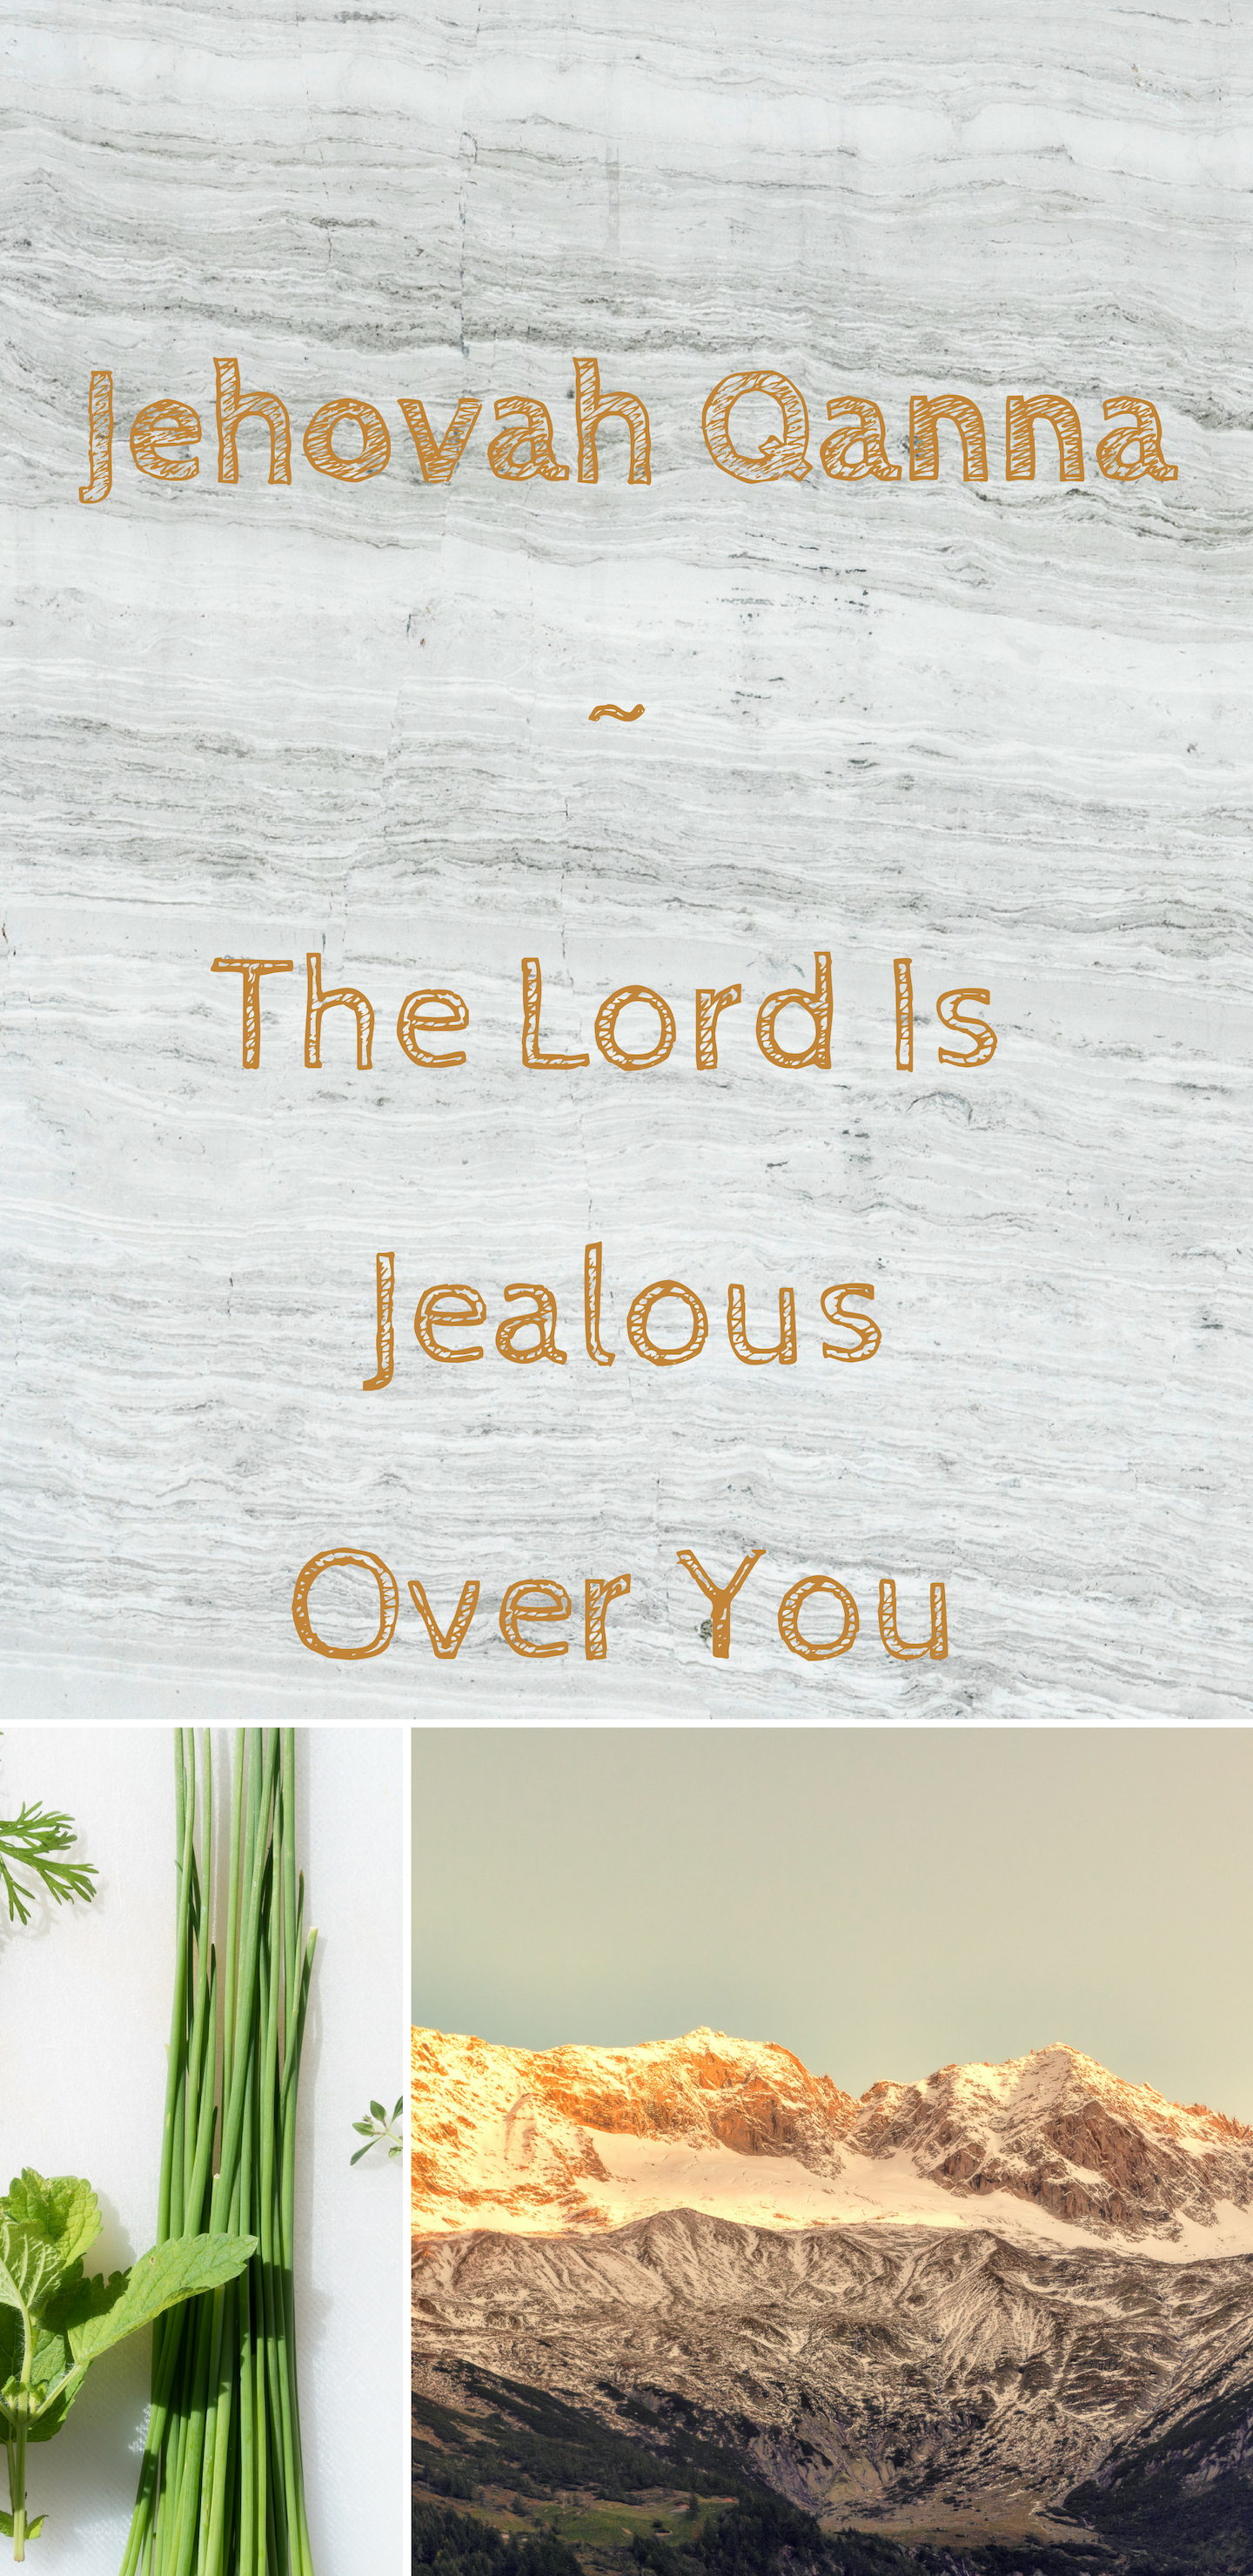 Jehovah Qanna The Lord Is Jealous Over You Themed Multi color 1440x2960